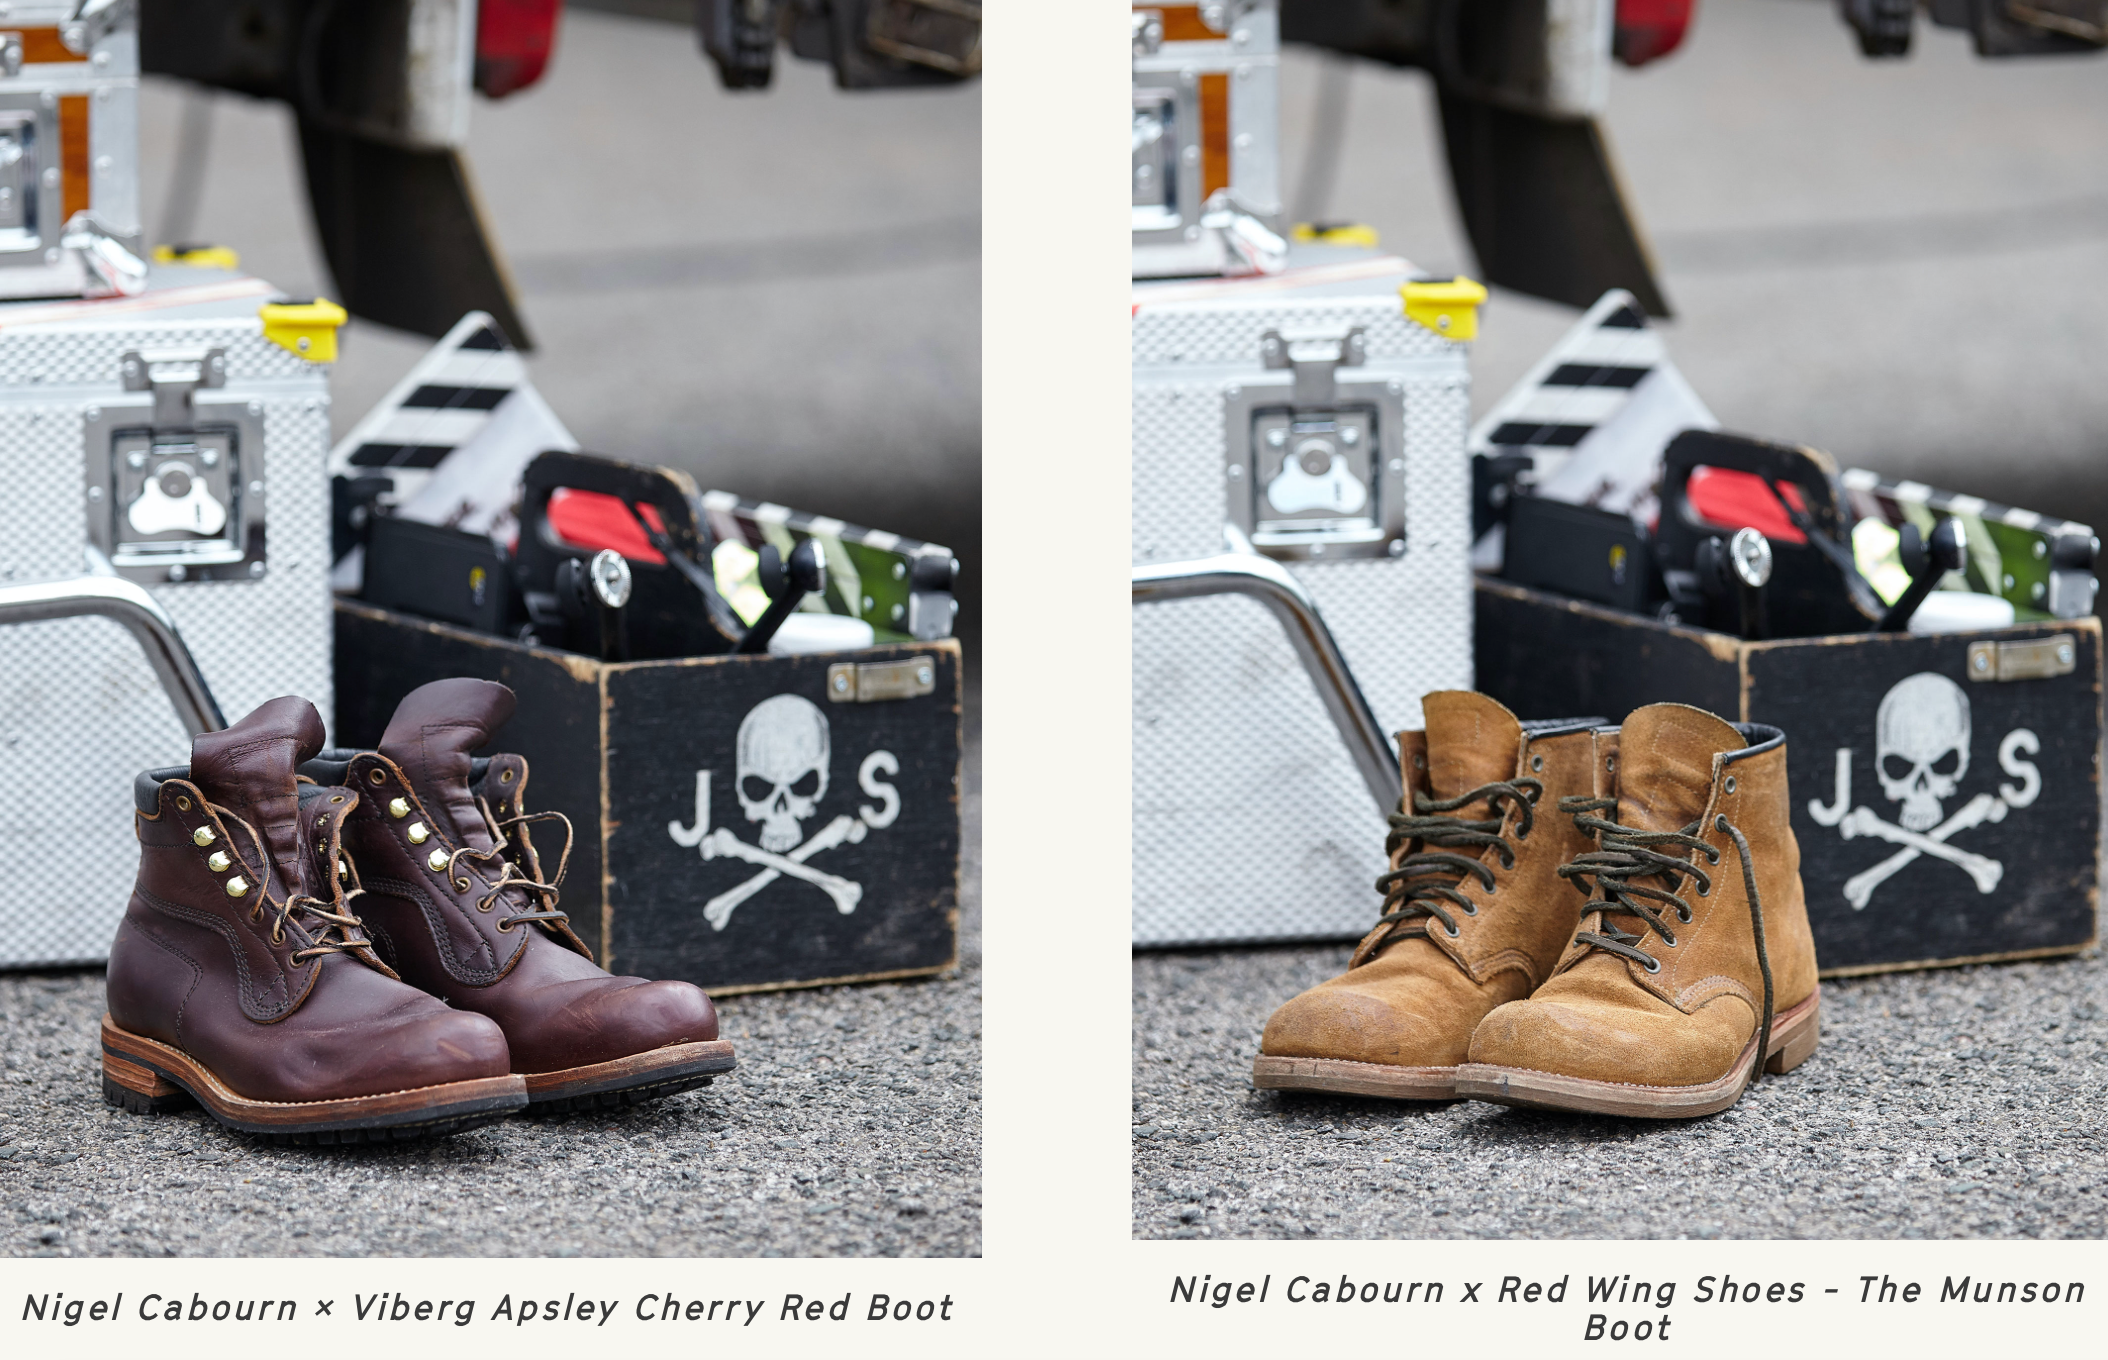 red wing x Nigel Cabourn